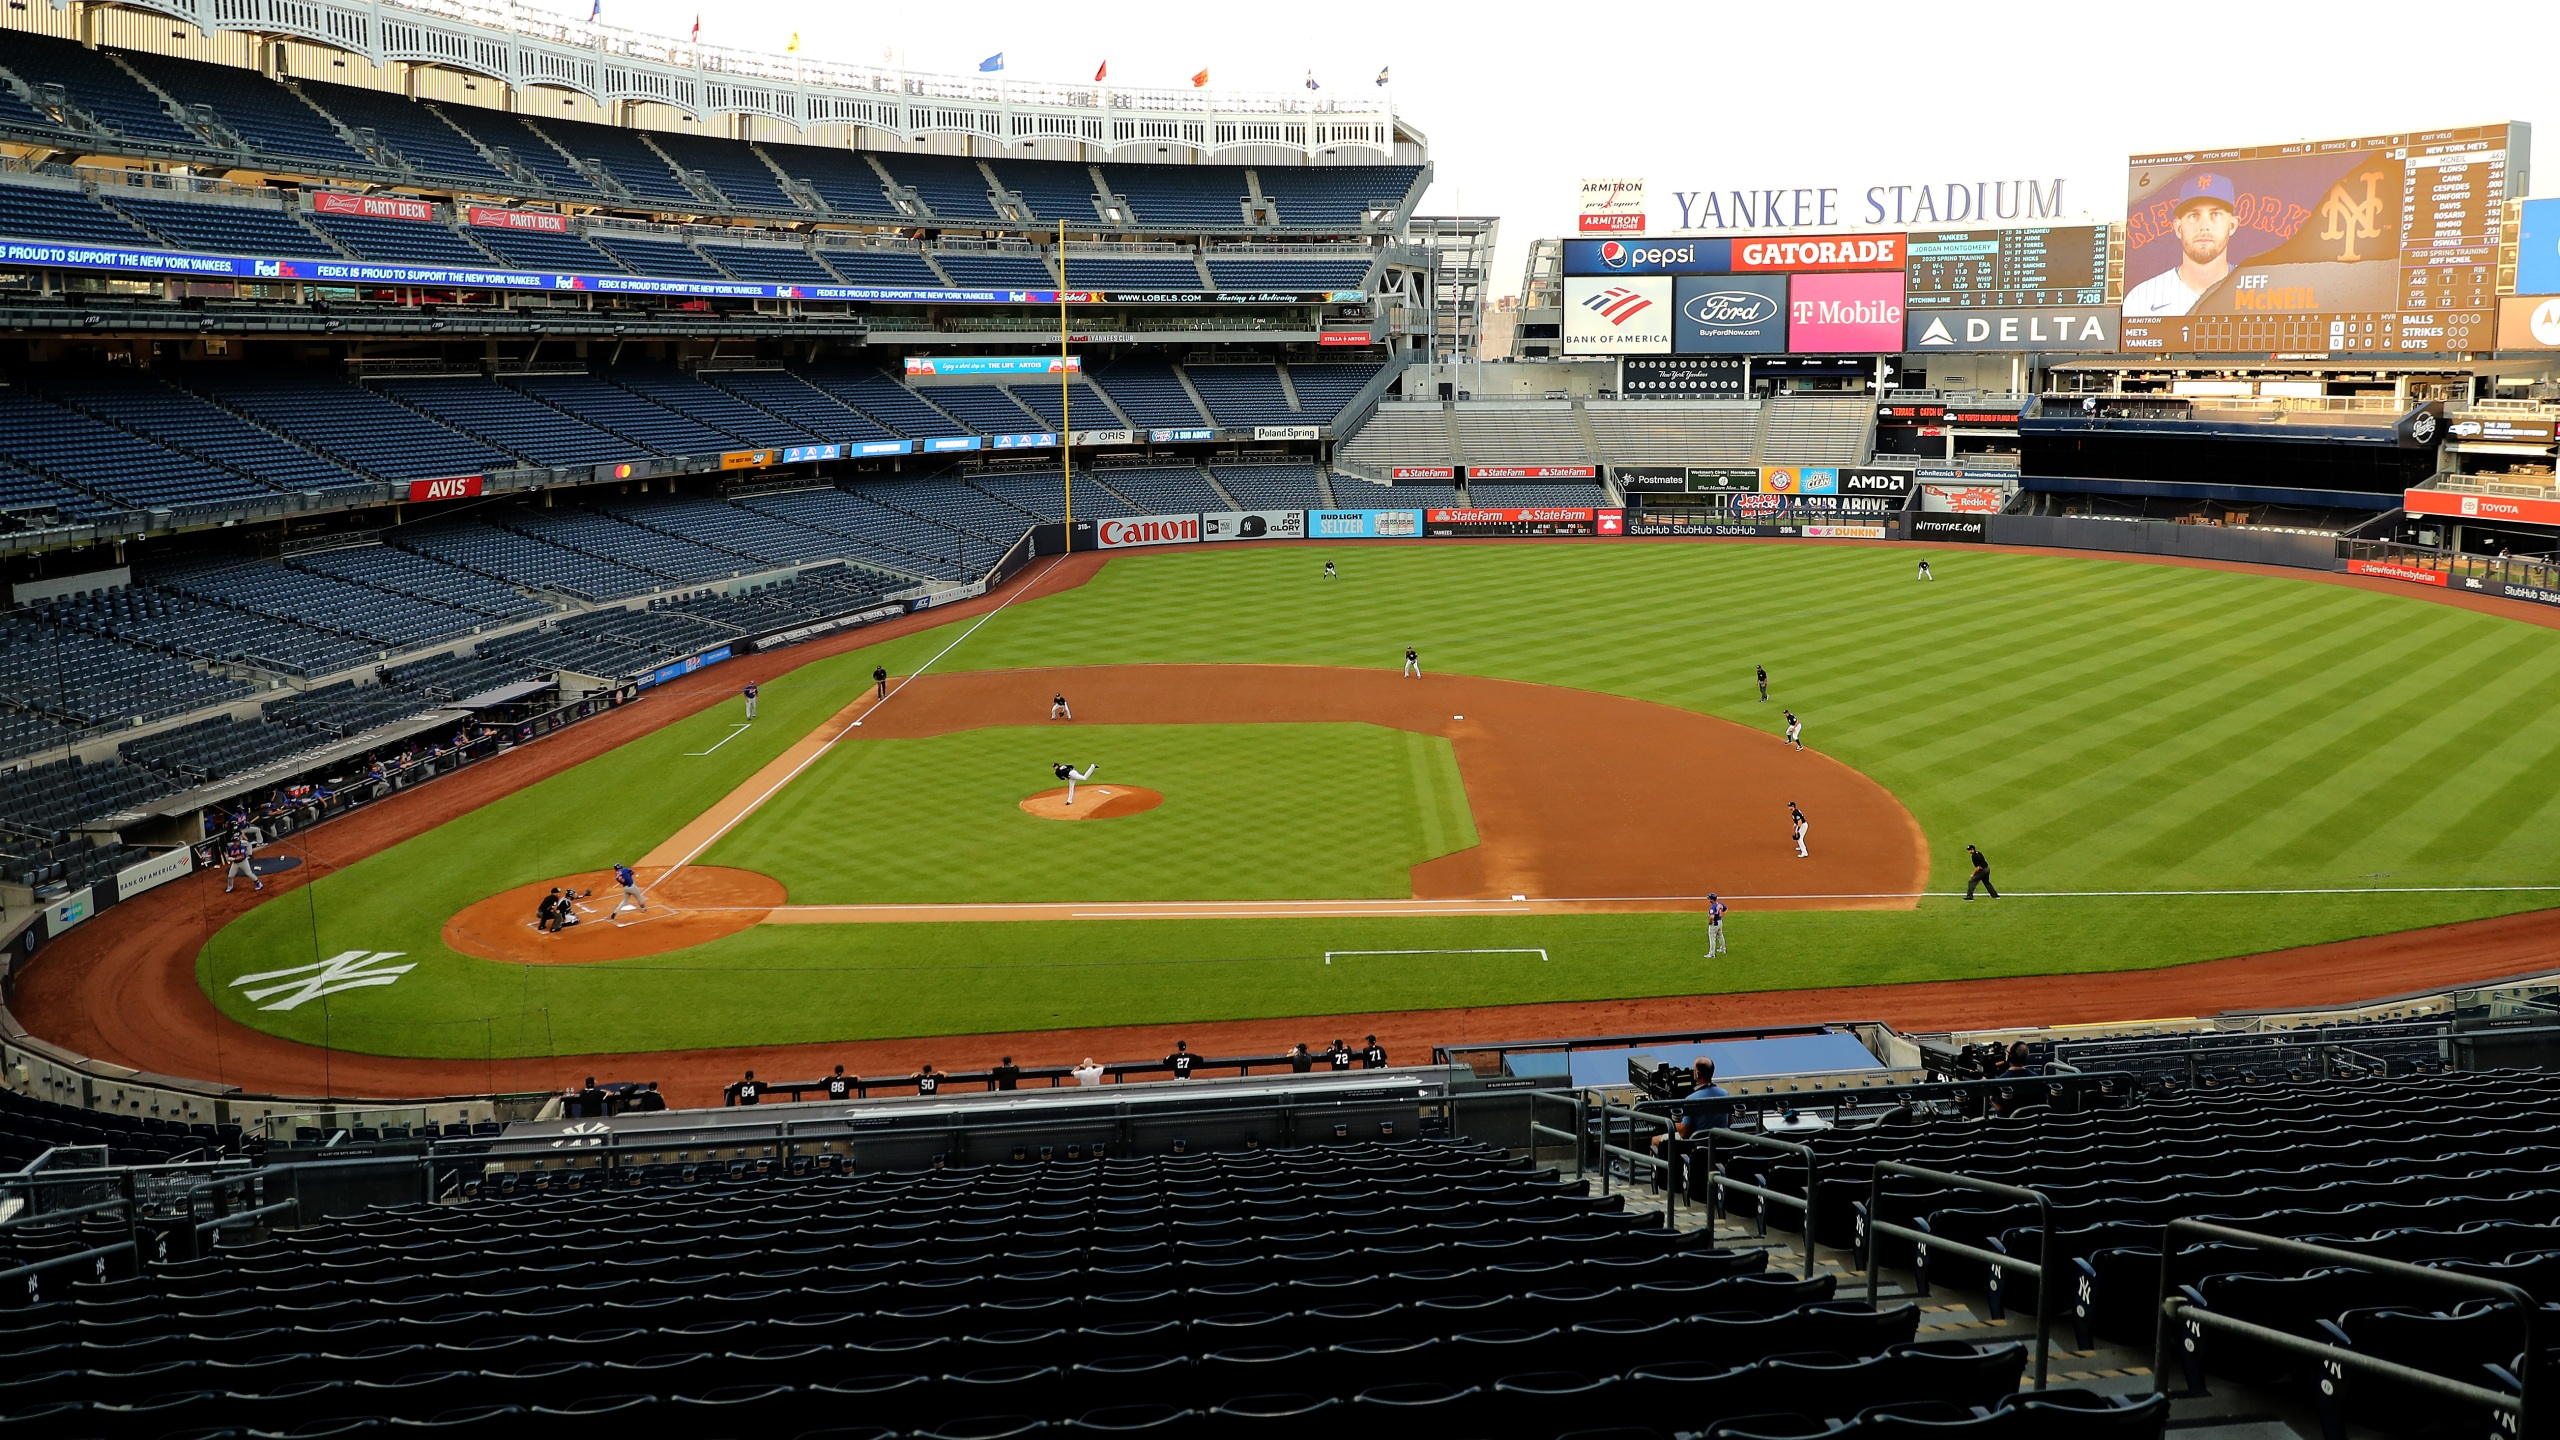 Schumer pitches MLB All-Star Game be held in New York